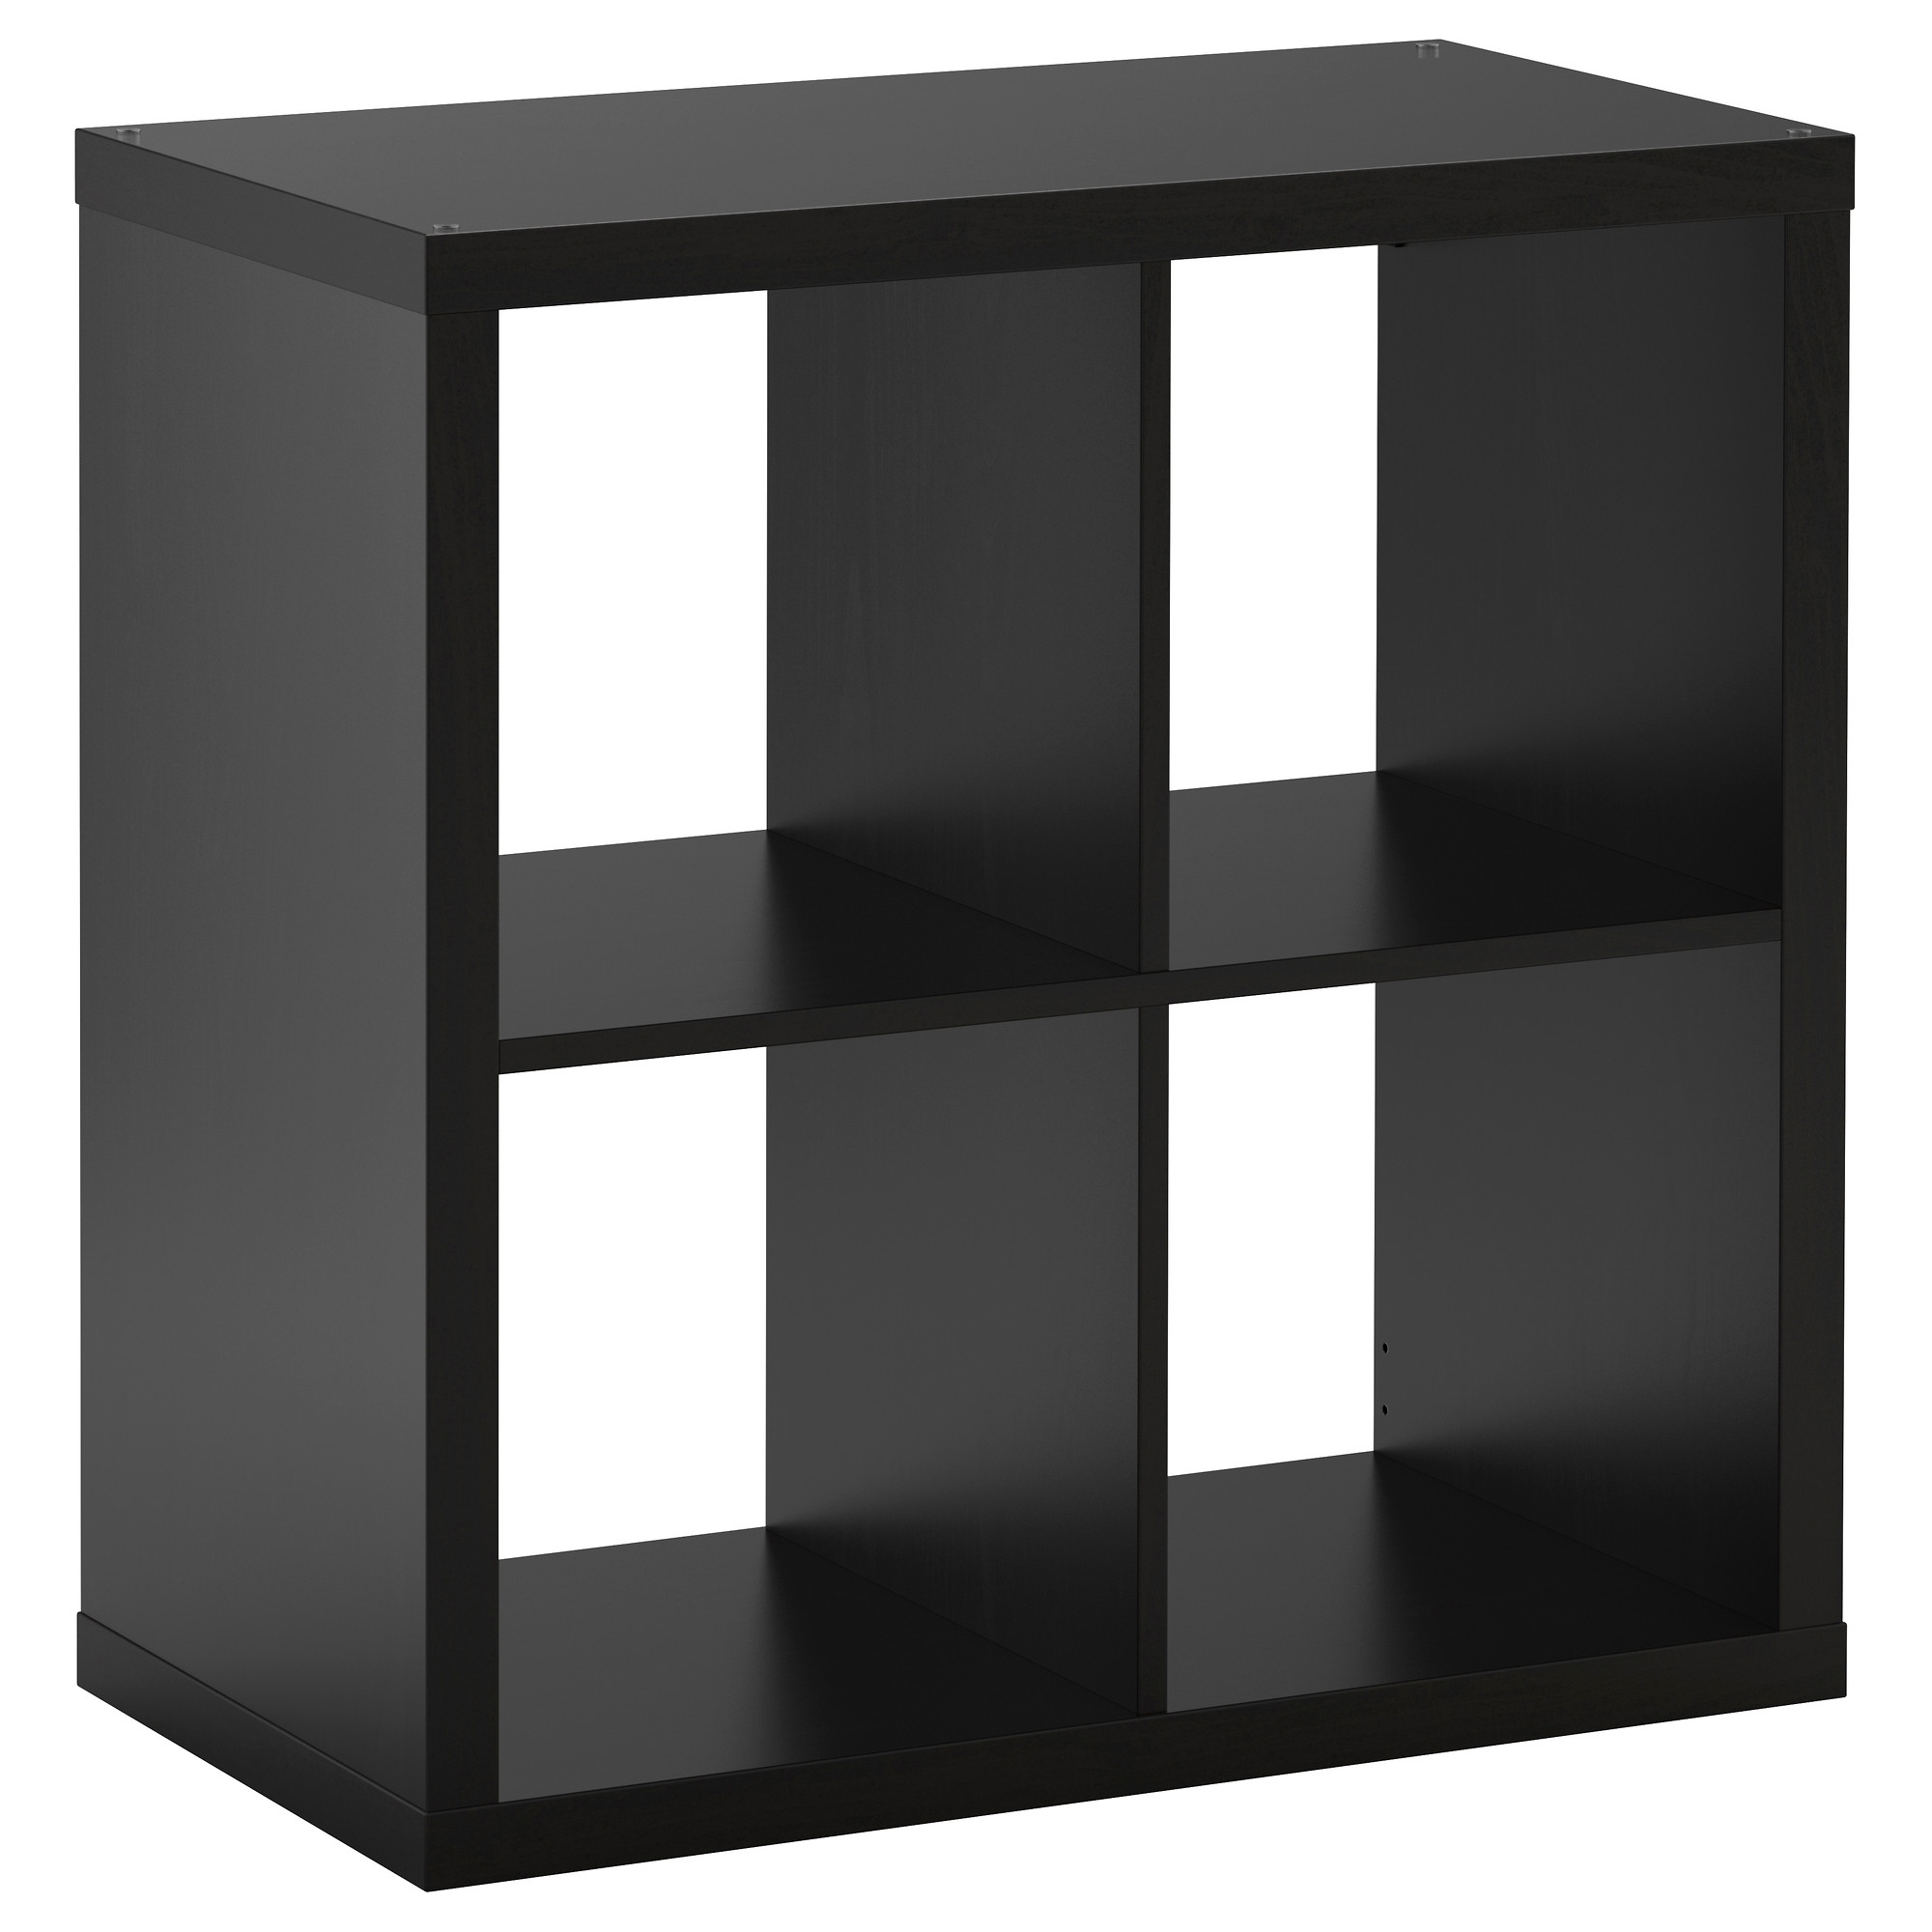 Widely Used Kallax Shelf Unit – Black Brown – Ikea With Ikea Kallax Bookcases (View 6 of 15)